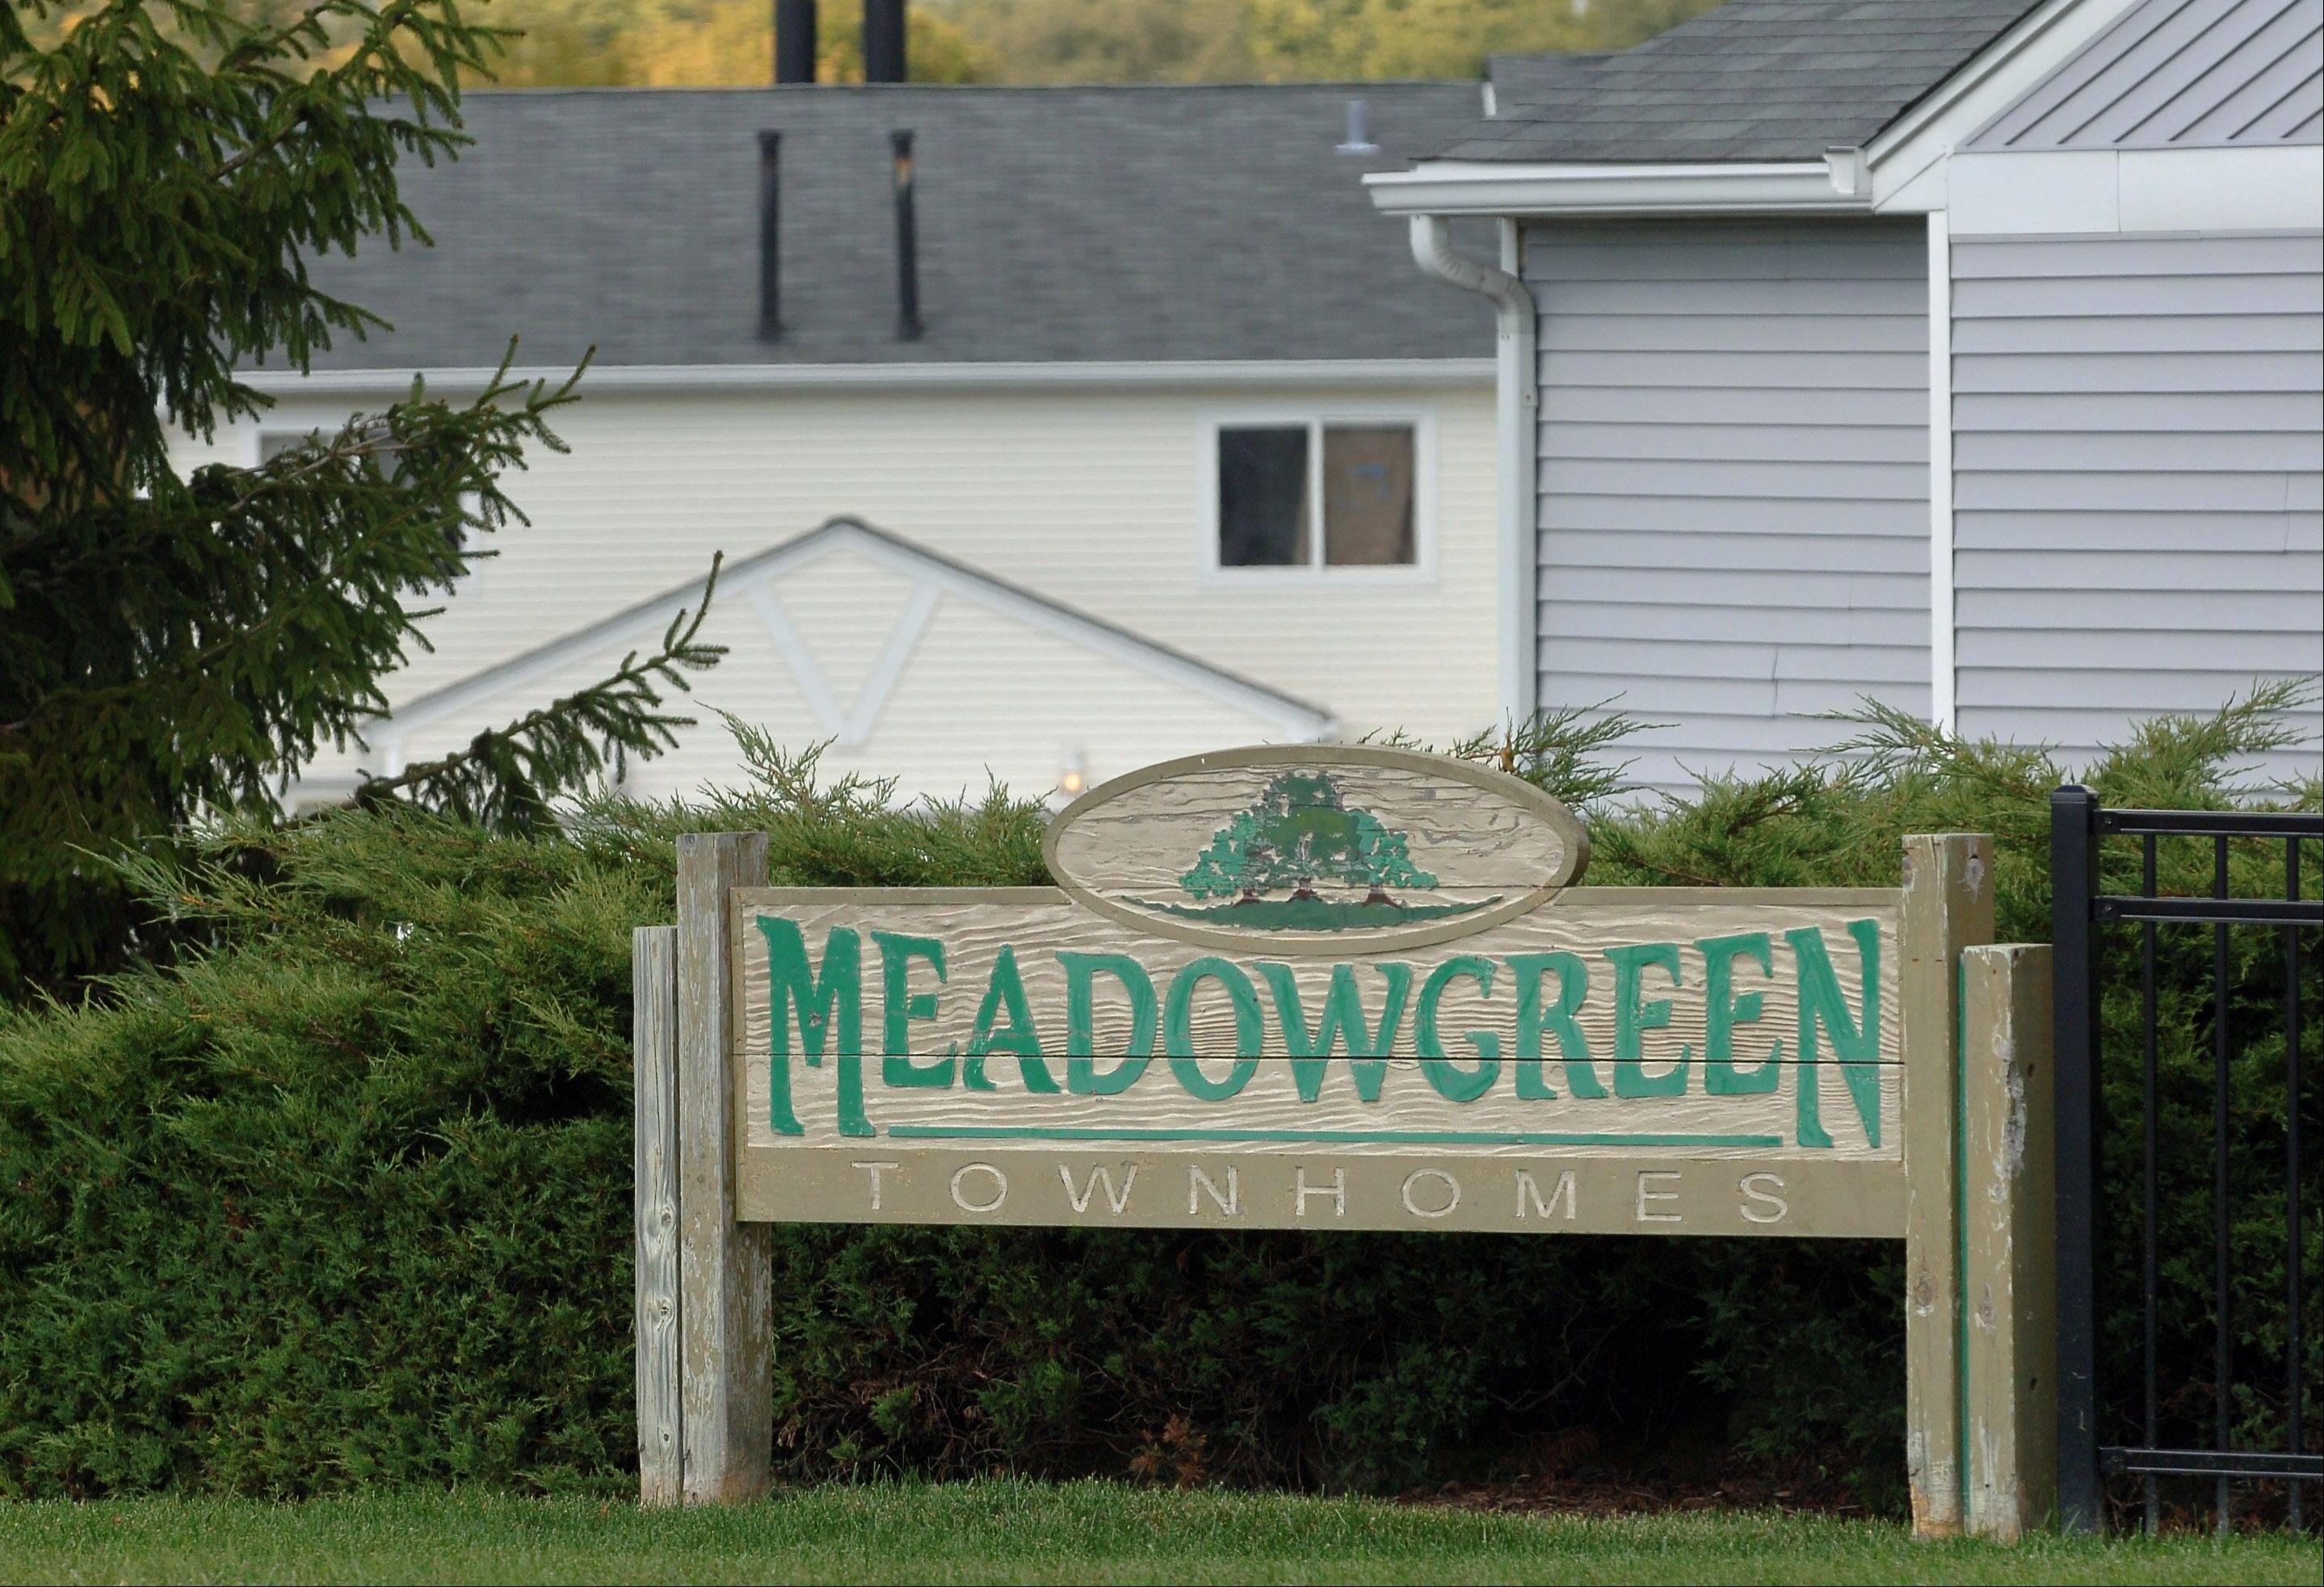 Paul Valade/pvalade@dailyherald.comThe TIF District No. 3 represented a unique public/private effort to improve property conditions at the Meadow Green town home subdivision, a 42-building, 200-unit complex, on Cedar Lake Road north of Rollins Road